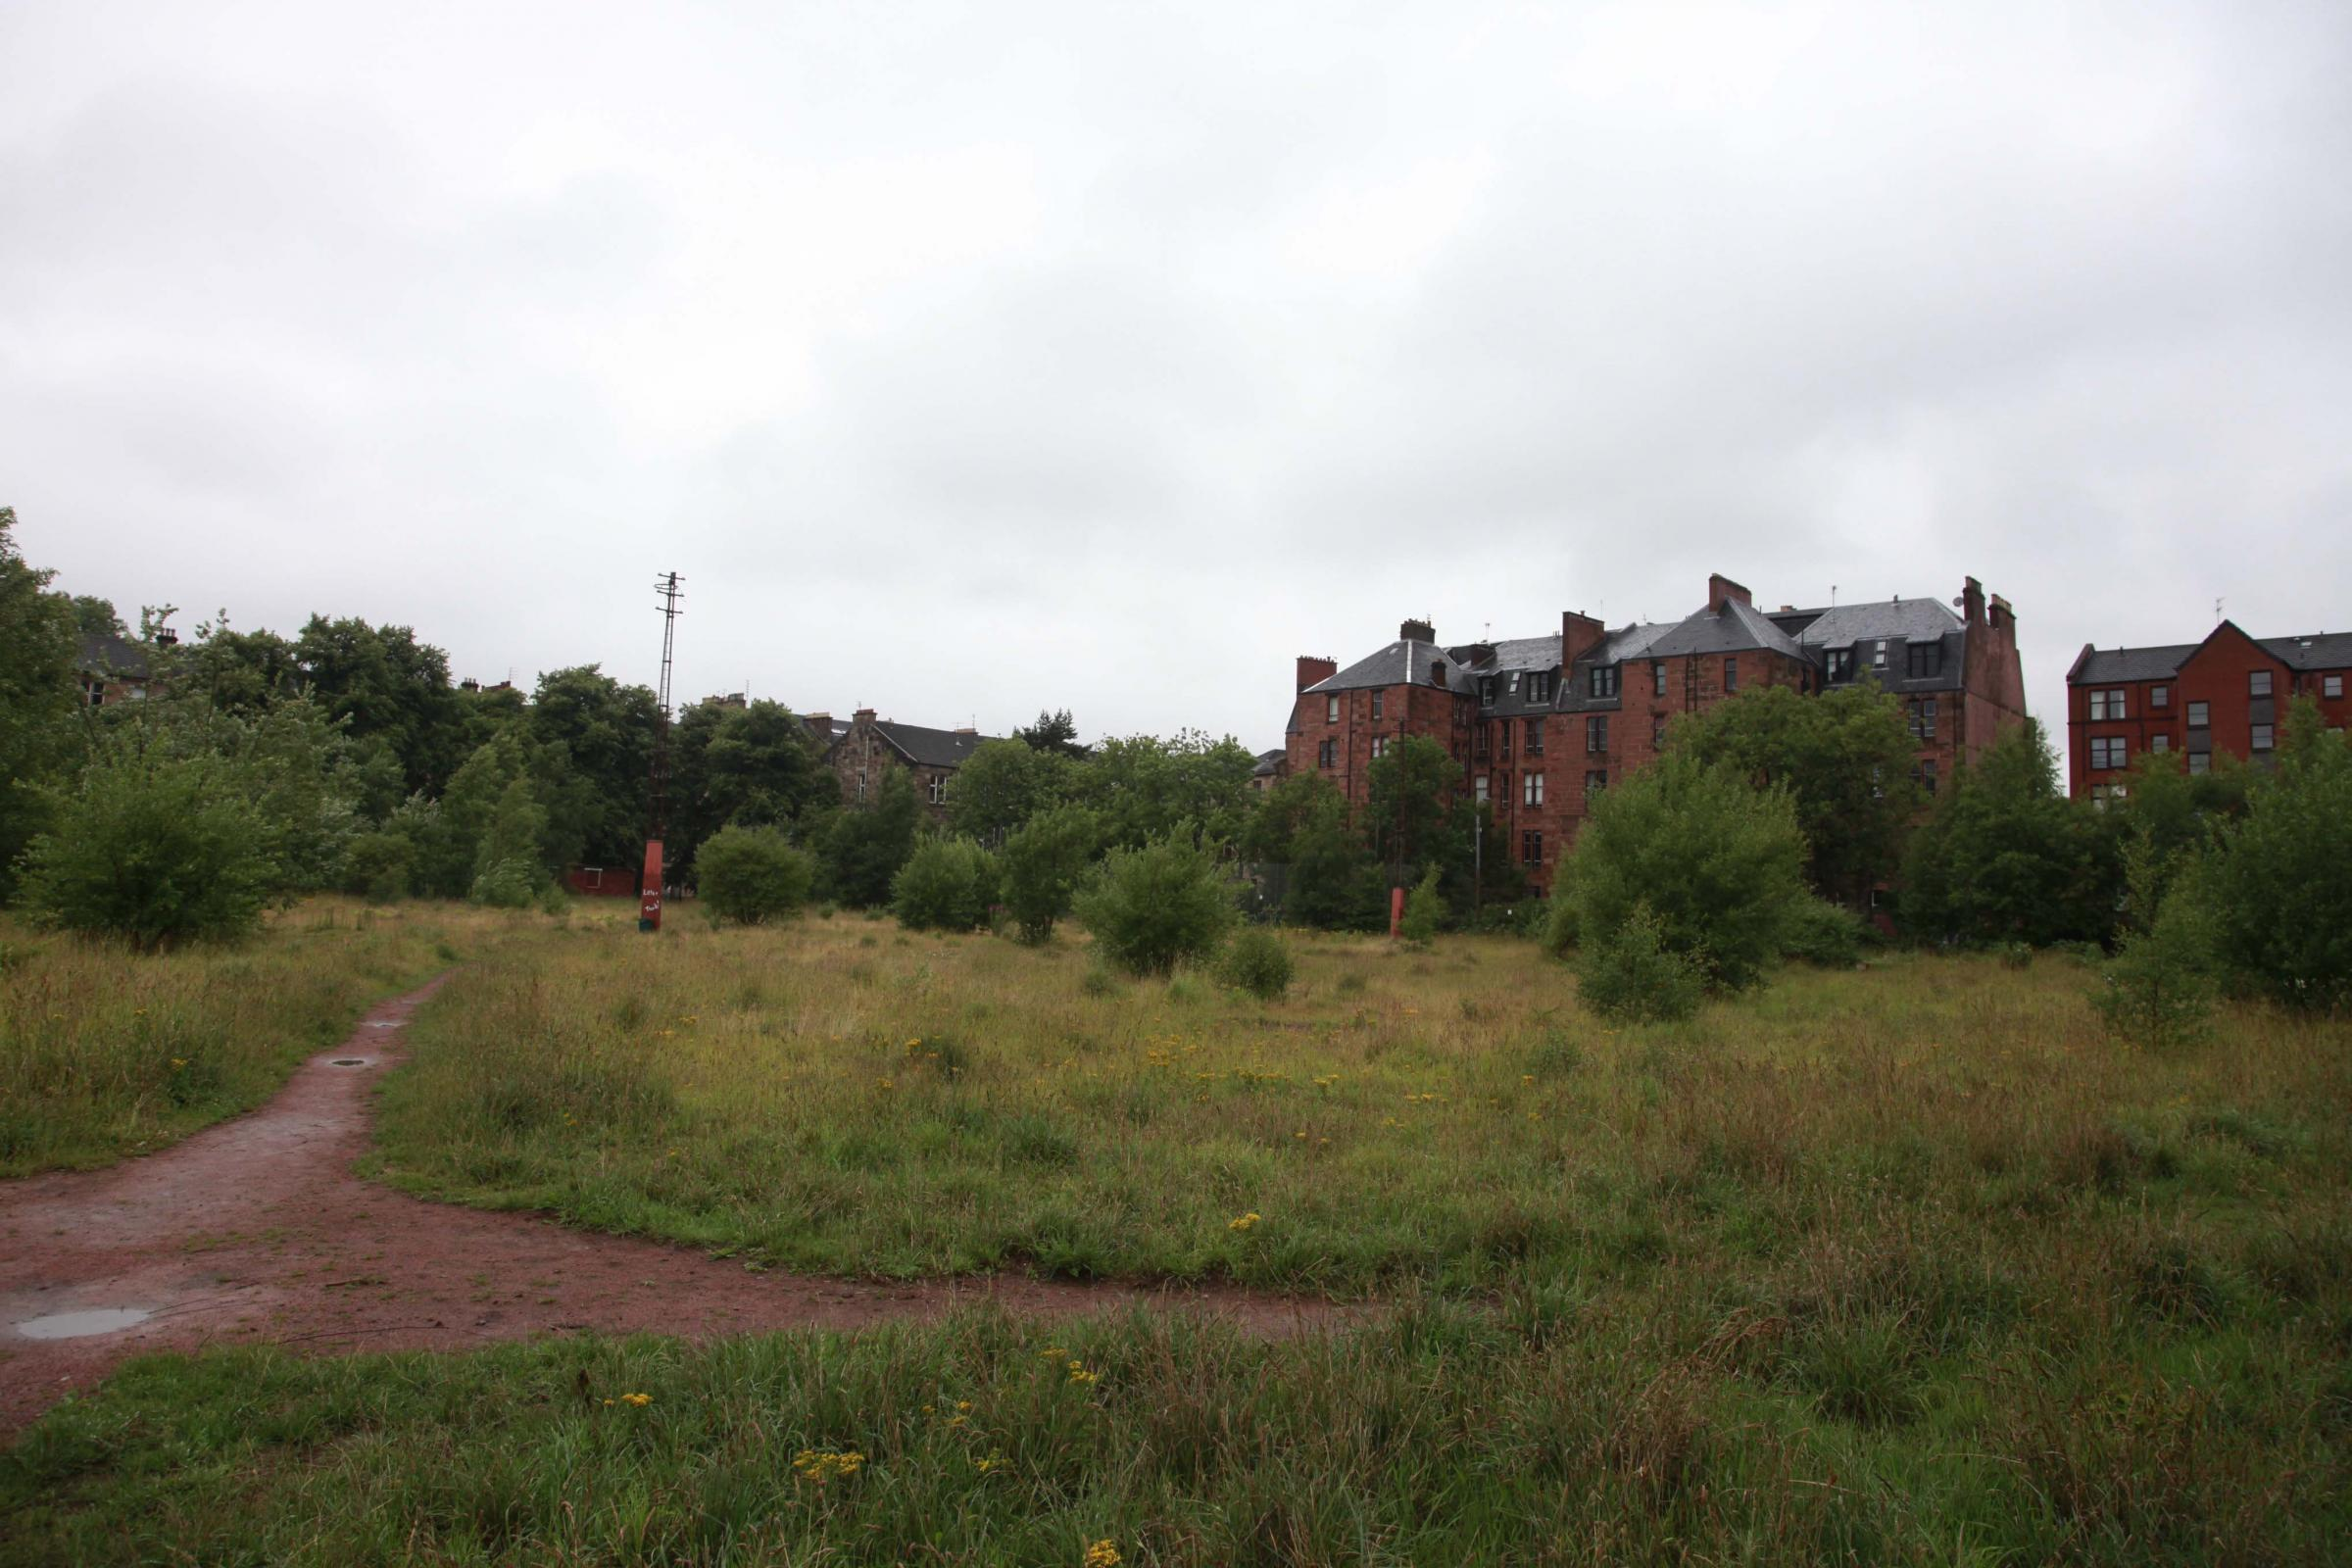 Glasgow charity disputes claims of anti-social behaviour at Children's Wood